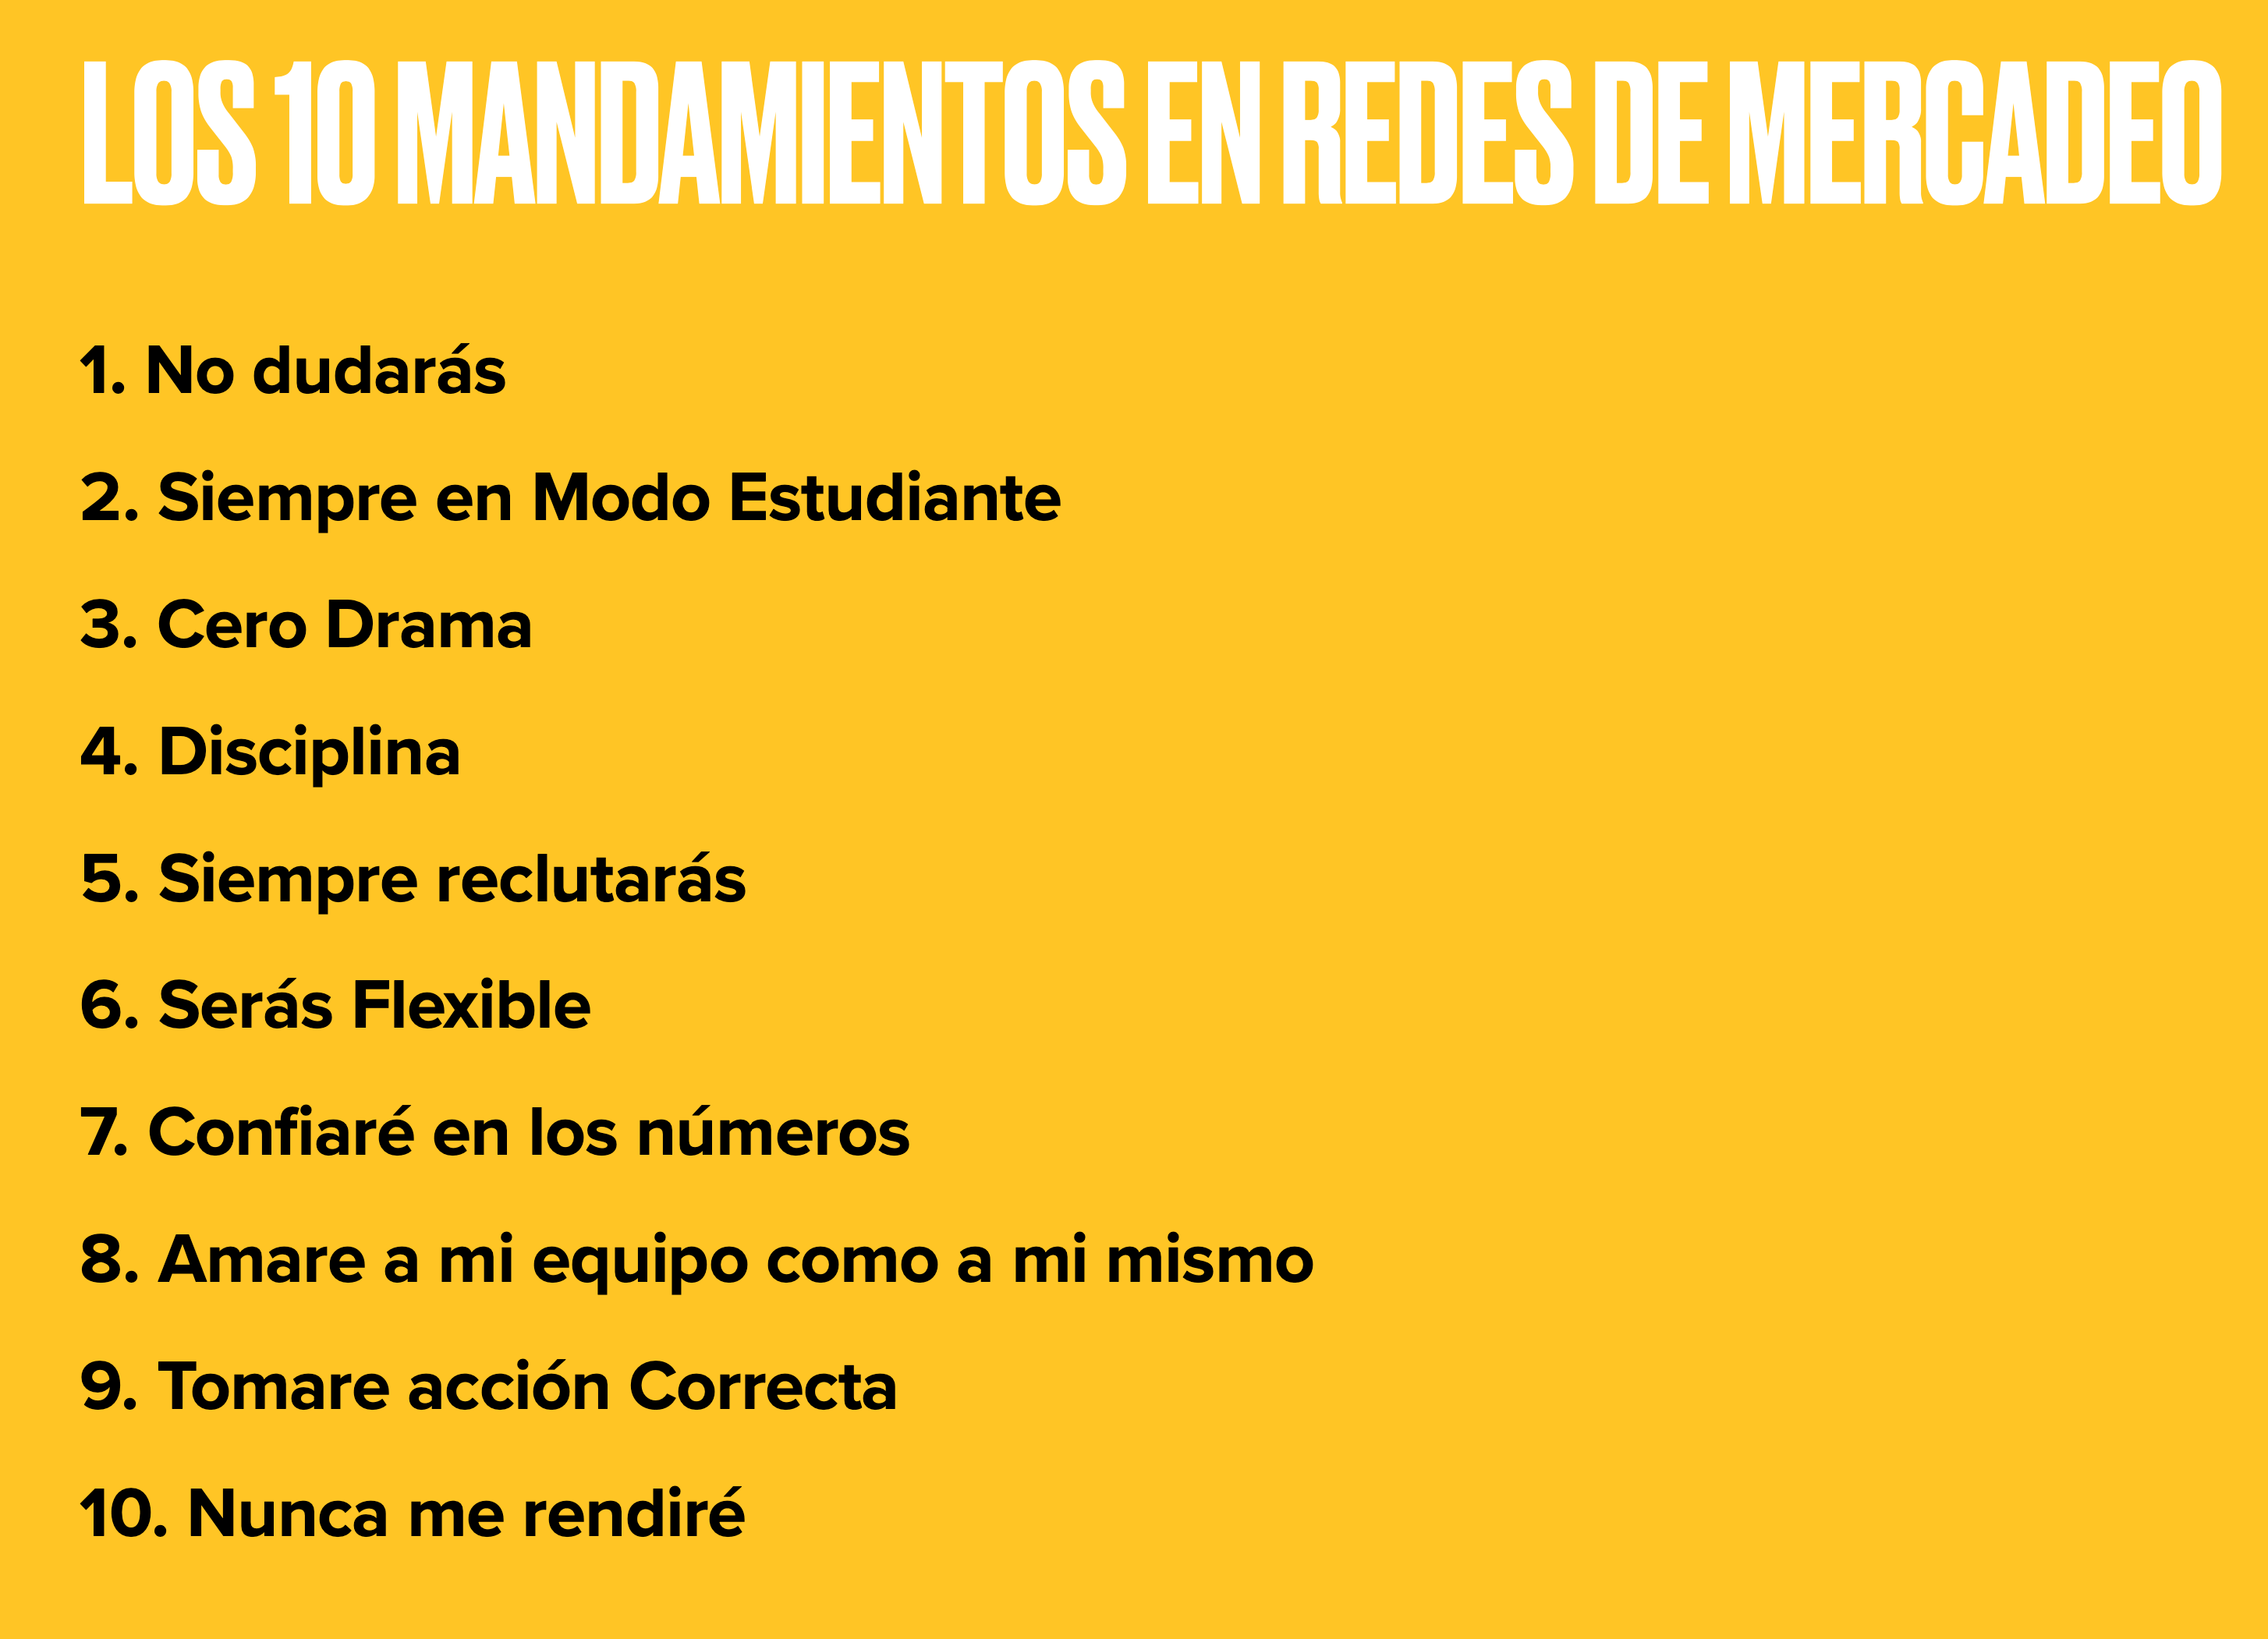 Mandamientos en Redes de Mercadeo